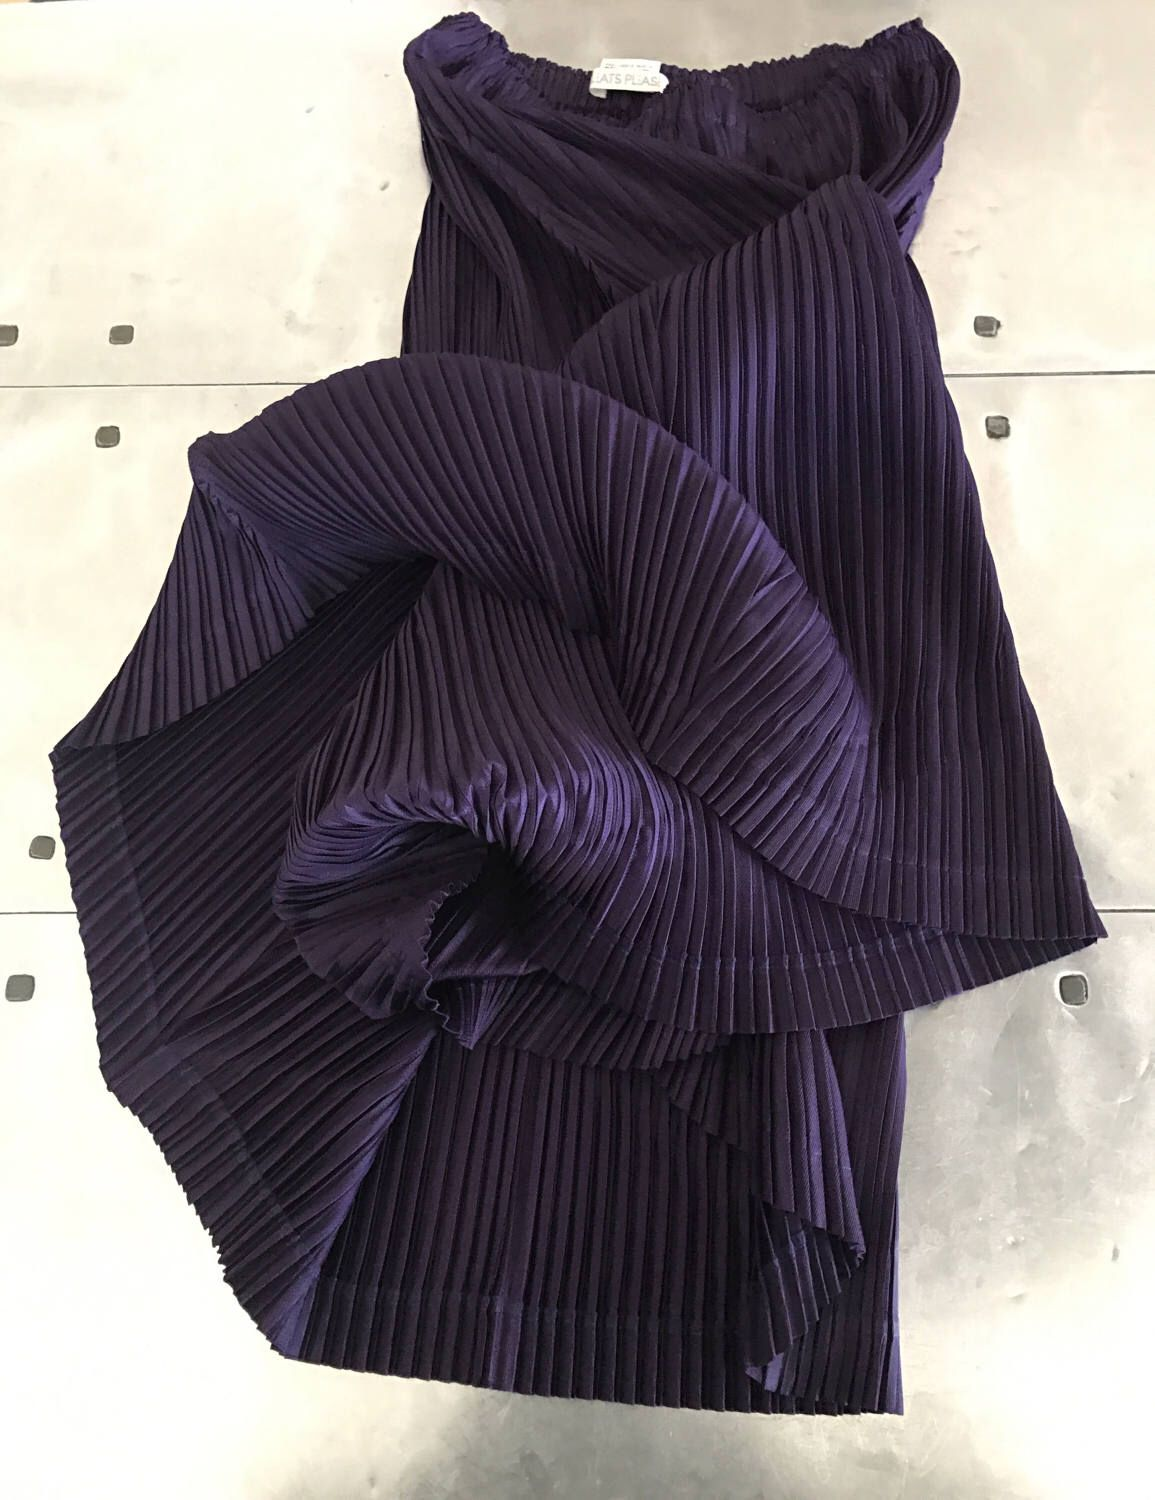 2b0500d25 ISSEY MIYAKE pleats please purple skirt, unique geometric skirt size 3,  Authentic vintage Issey